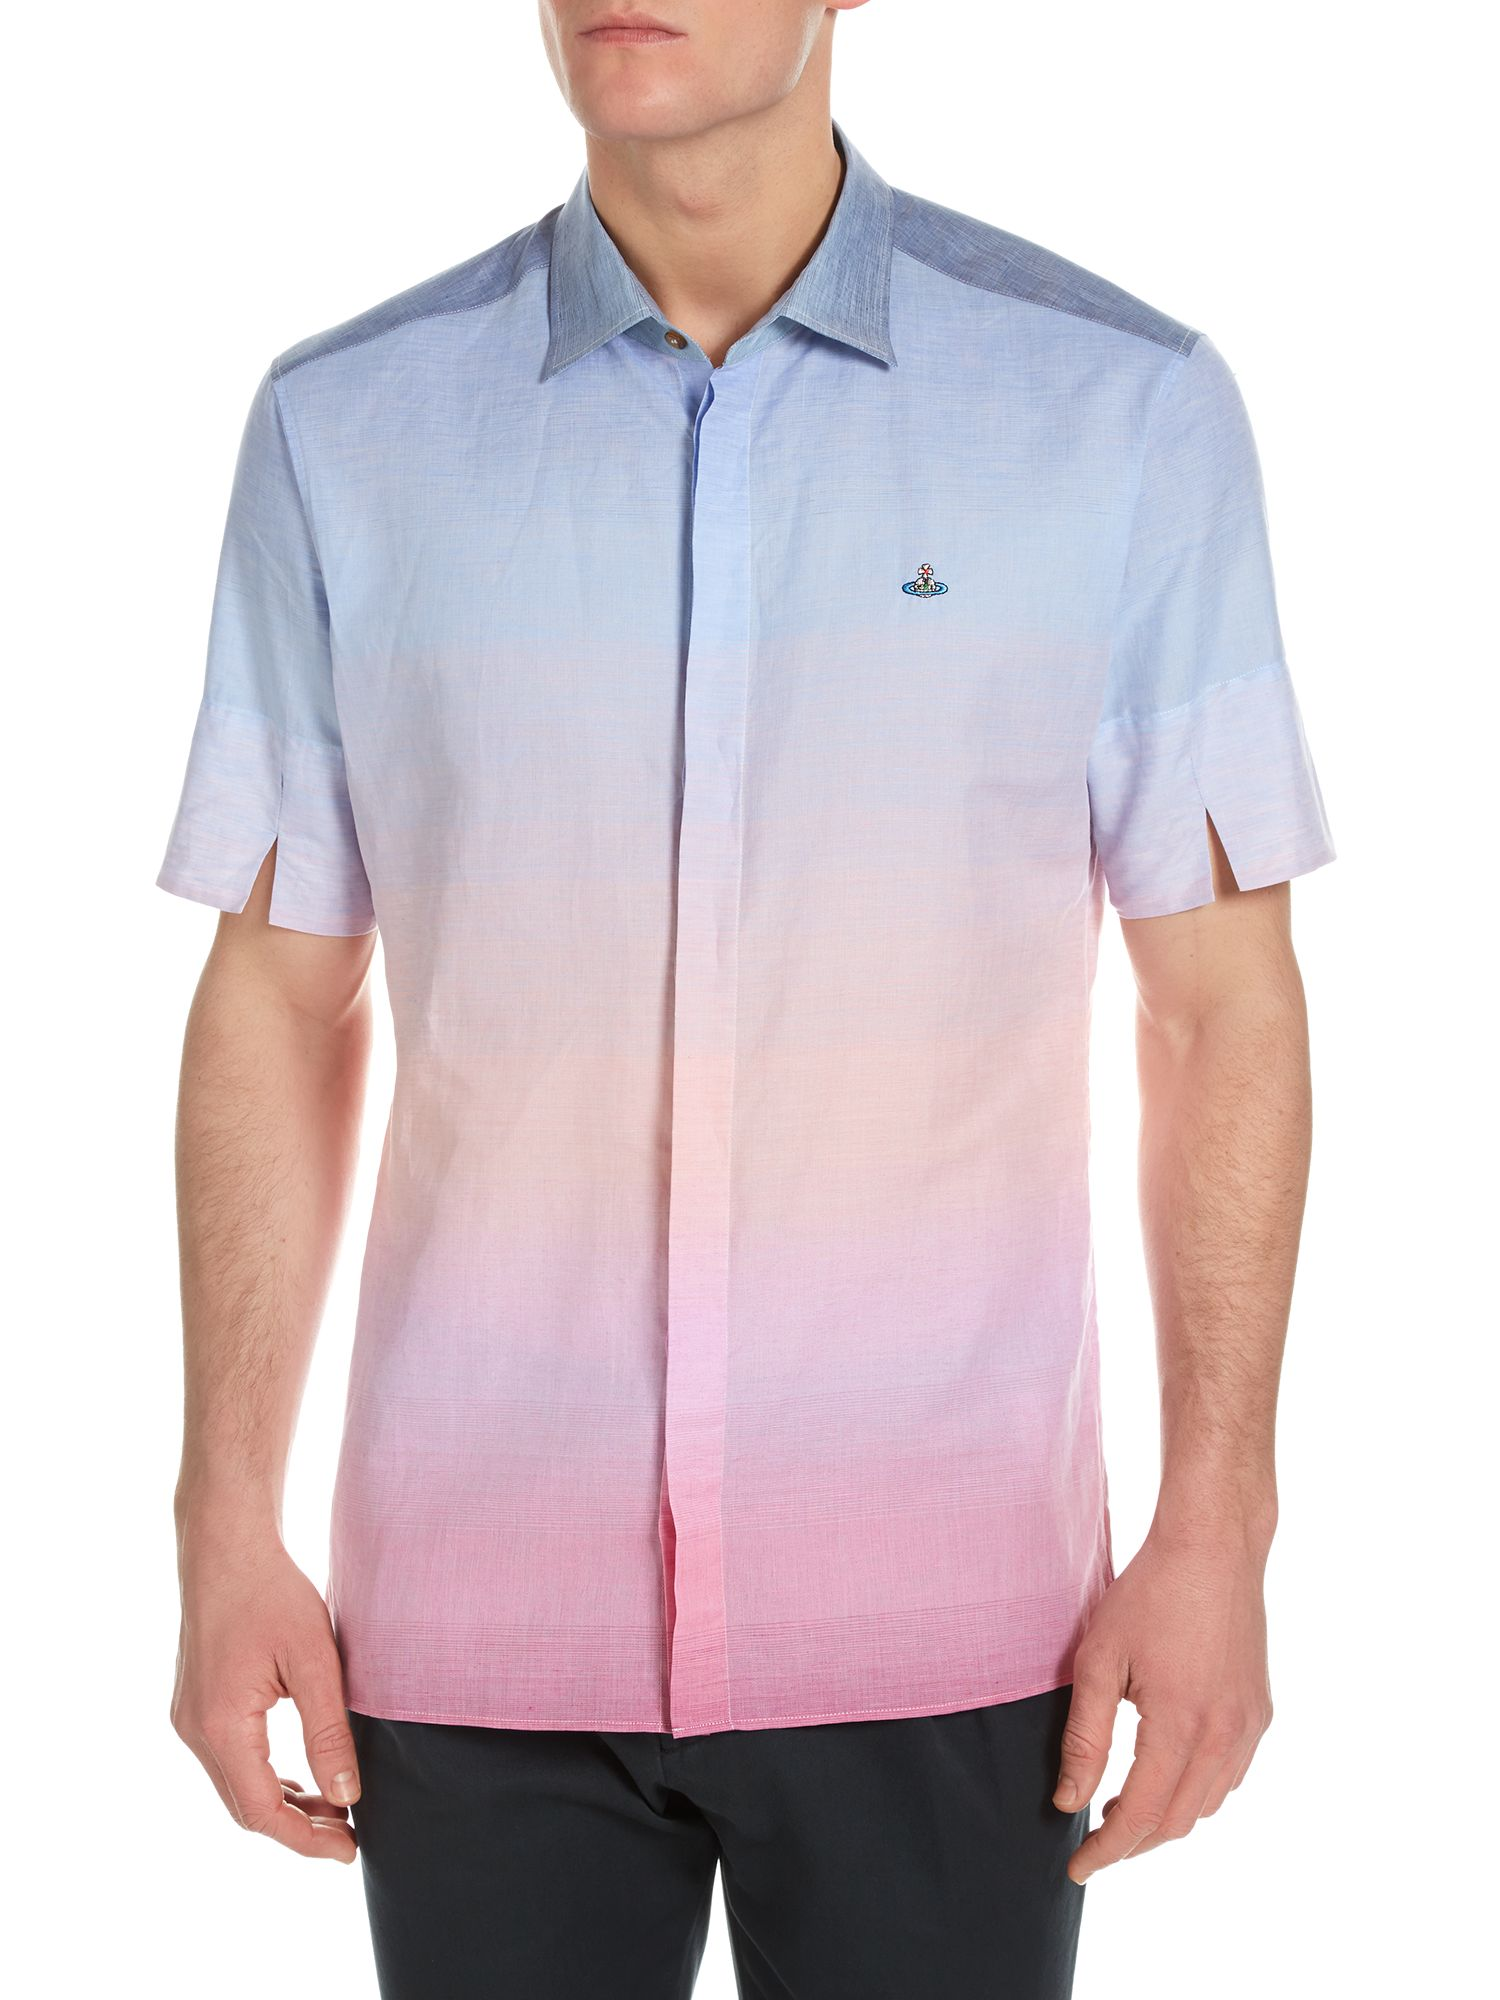 Sunset dip dye short sleeve shirt